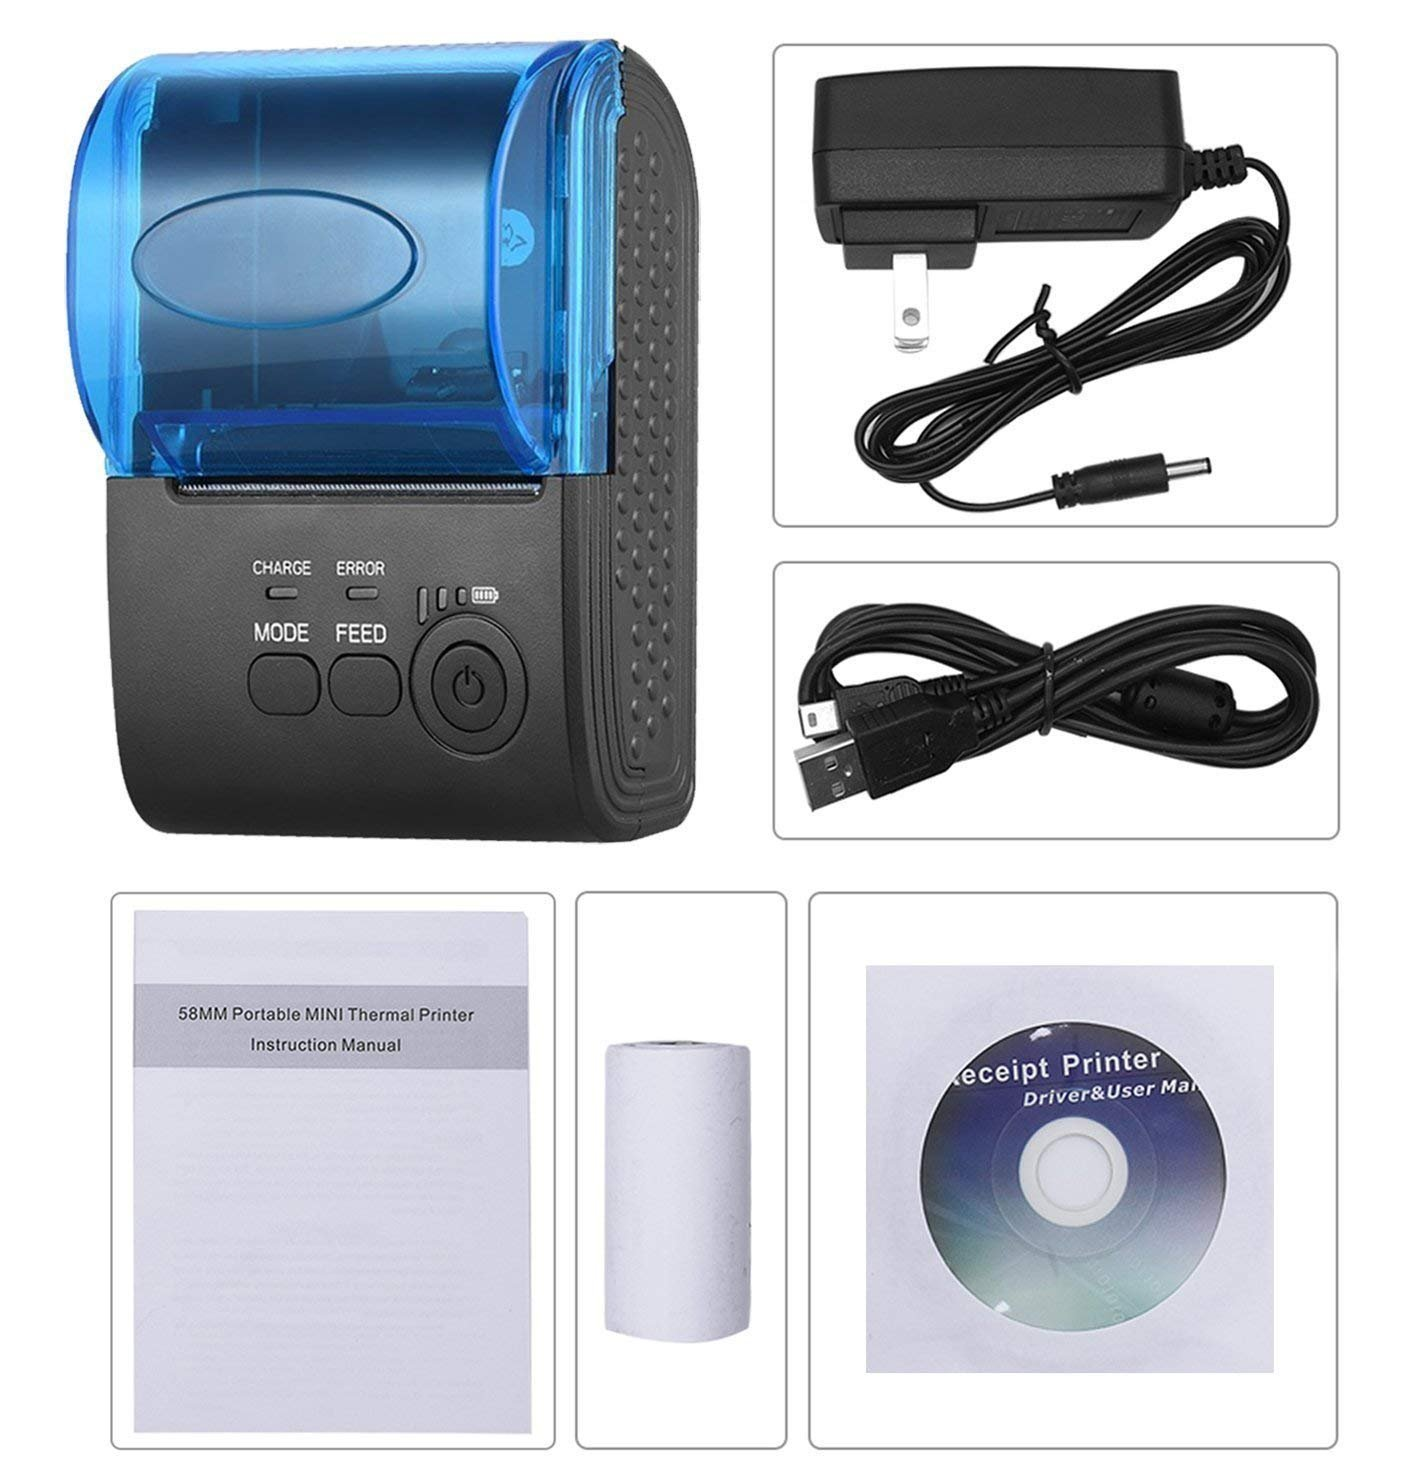 Cysno 58mm Bluetooth Thermal Printer Mini Supported for Both